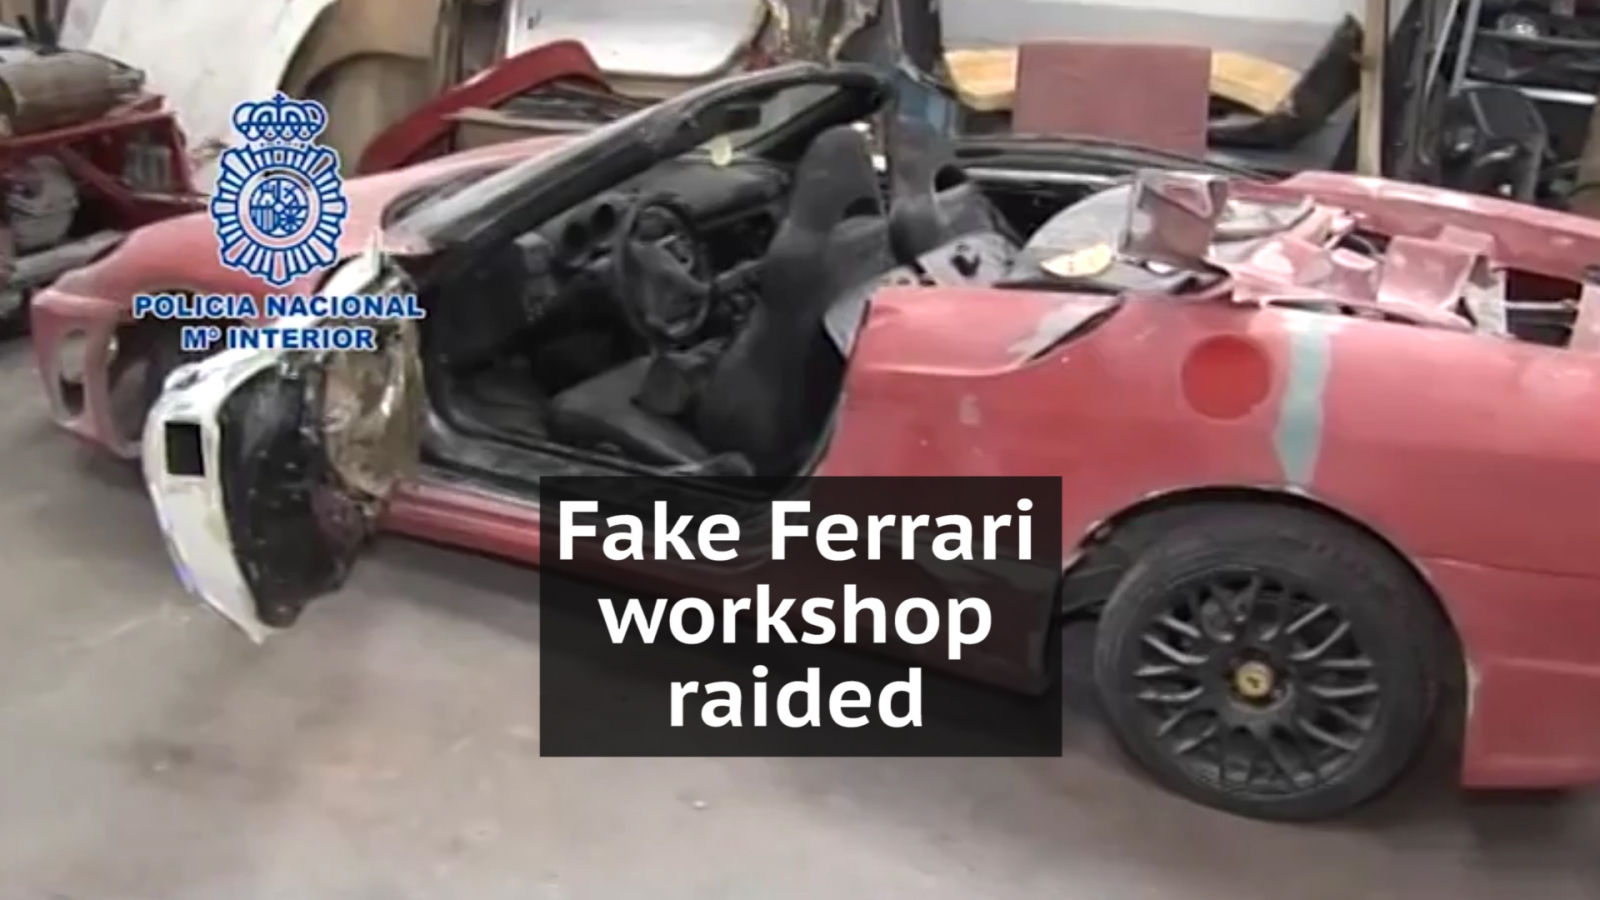 Police raid Spanish workshop which transformed Peugeots into Ferraris